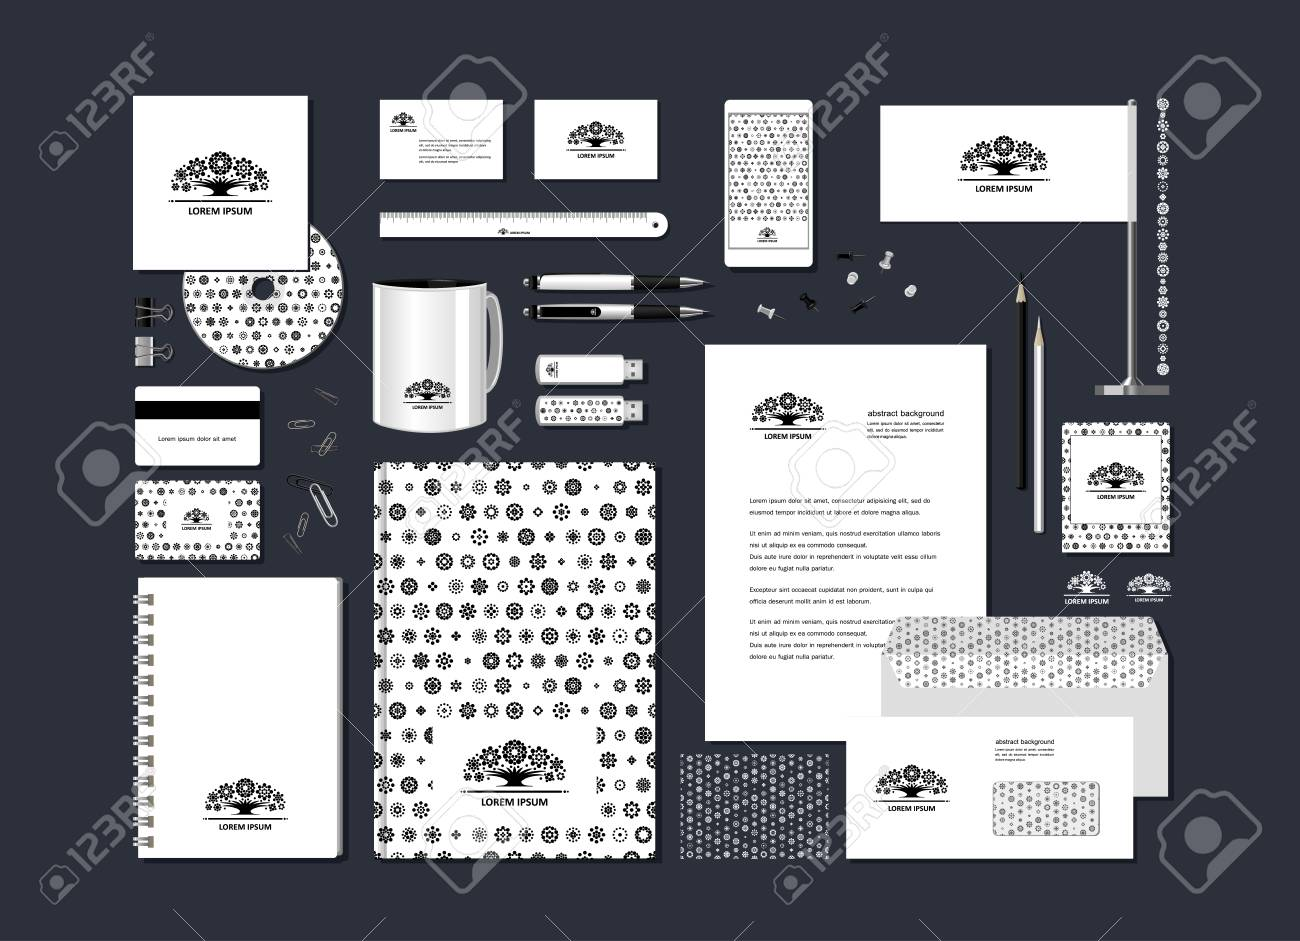 The Neutral Black And White Corporate Identity With The Stylized Royalty Free Cliparts Vectors And Stock Illustration Image 105521598